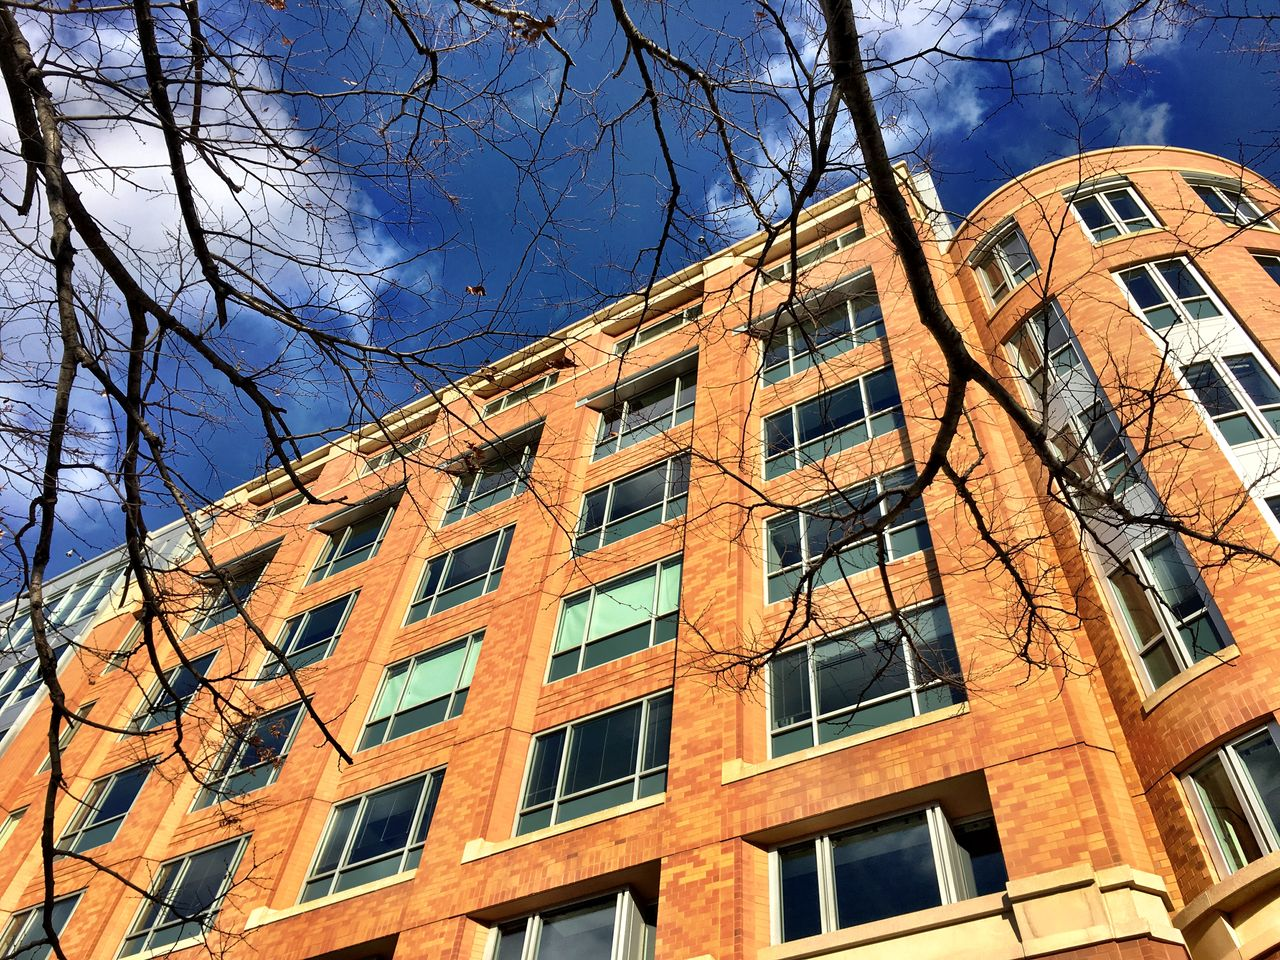 Architecture Bare Branches Bare Tree Brick Building Building Exterior Built Structure Business District City Day Dcfocused Dcphotographer Low Angle View Low Angle View No People Outdoors Politics Residential Building Sky Tree Urban Washington DC Washington, D. C. Window Winter